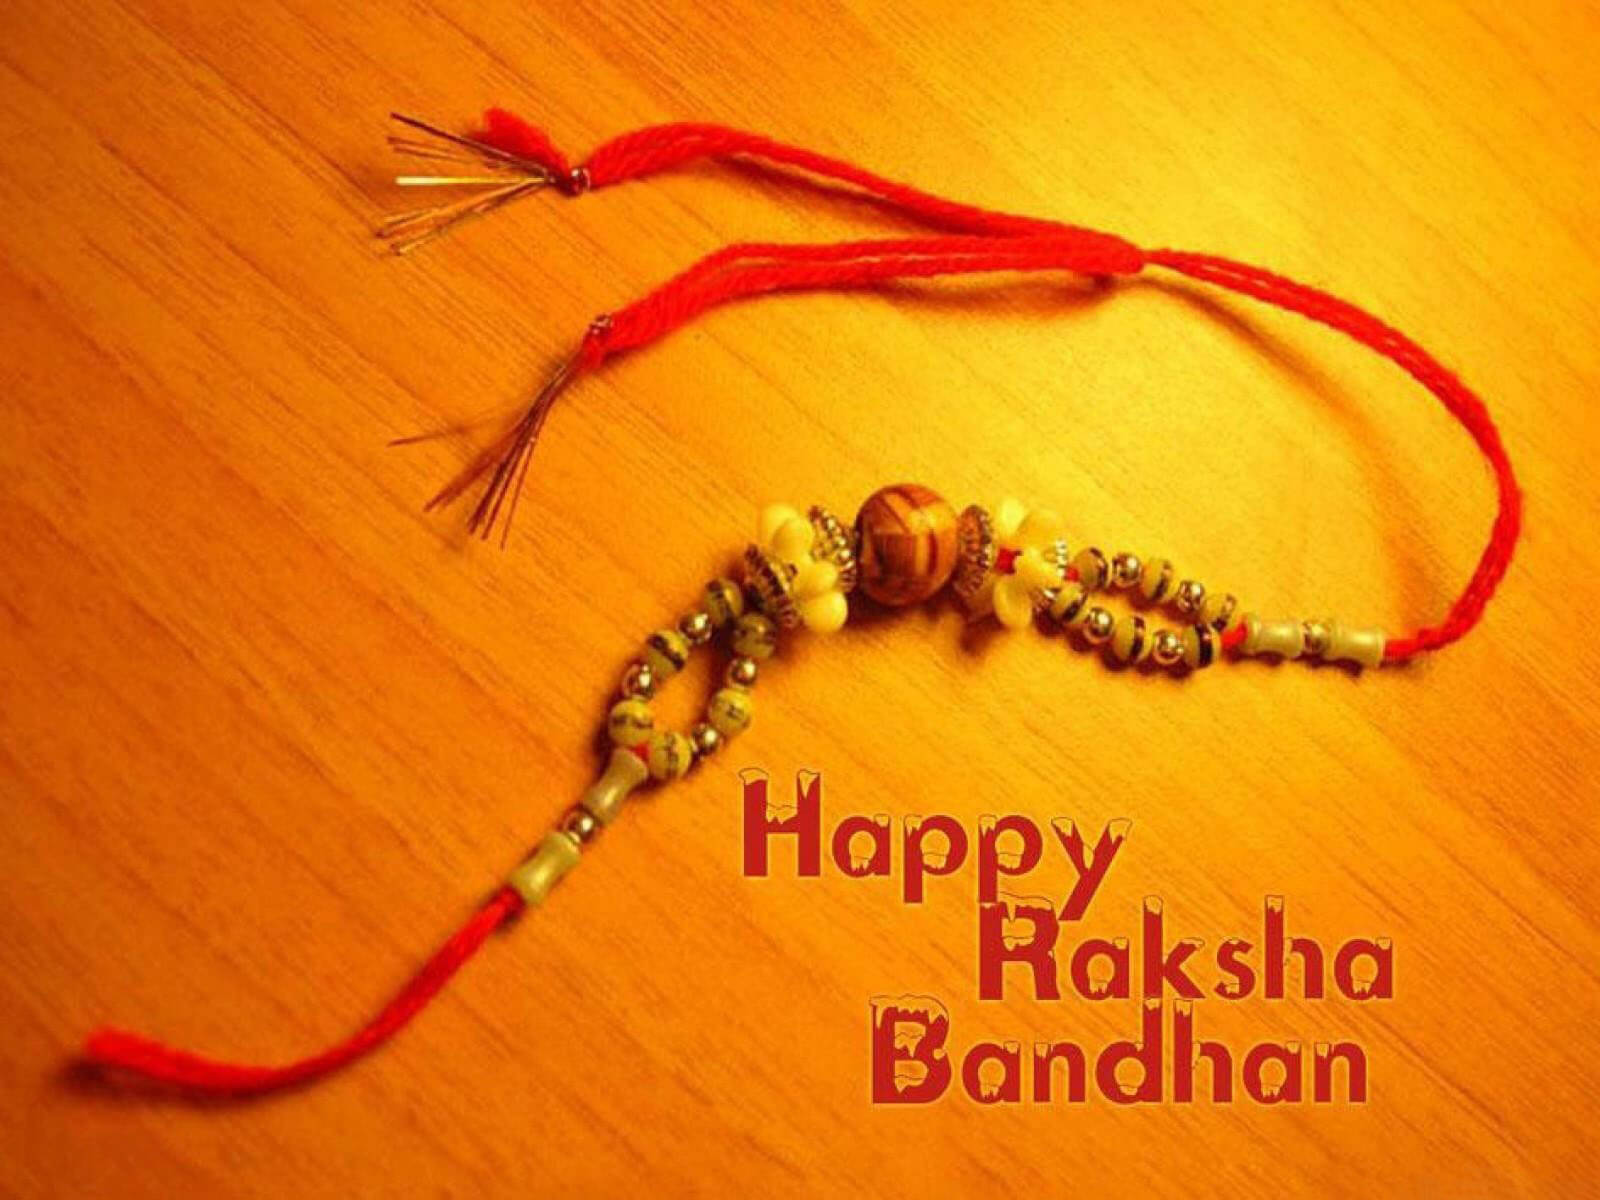 happy raksha bandhan greetings wishes hd wallpaper